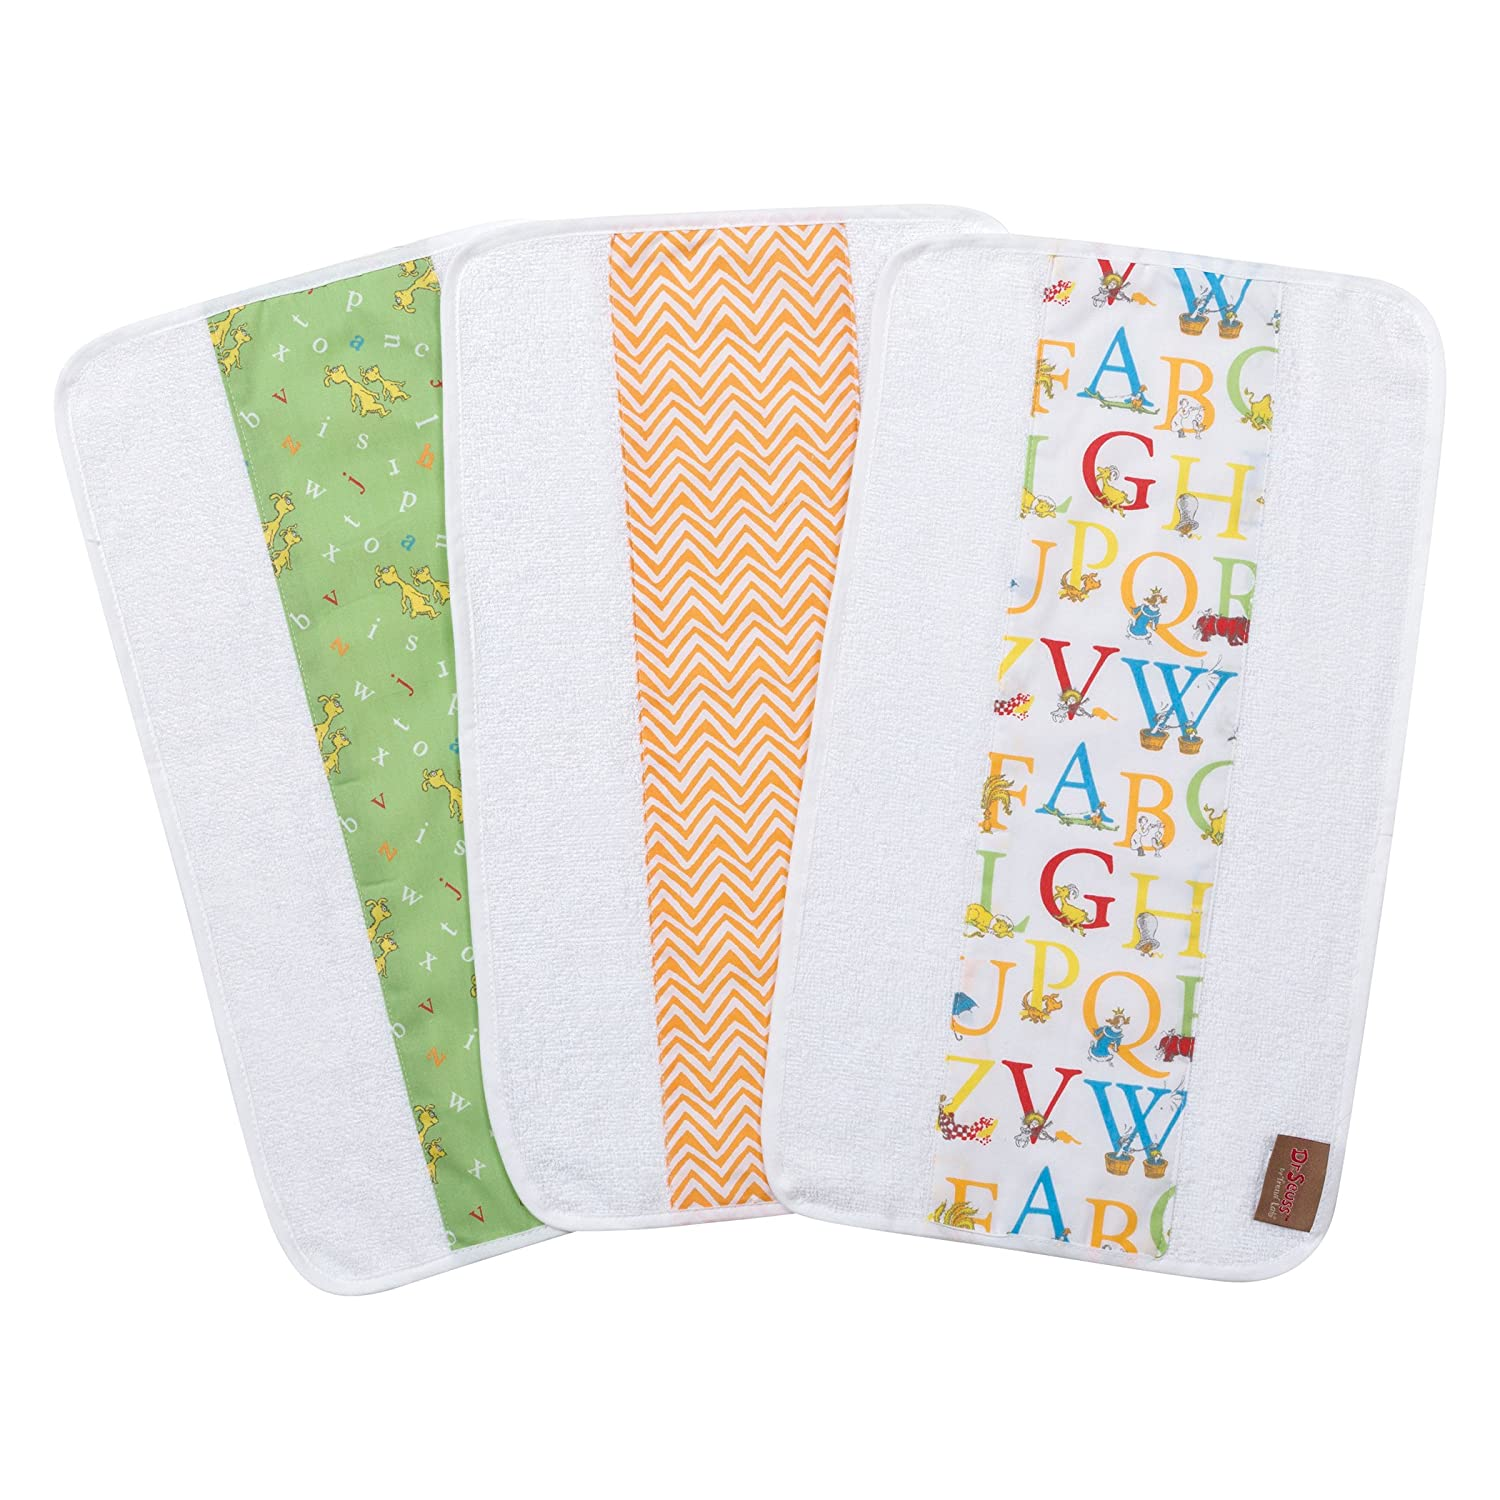 Trend Lab Dr. Seuss by ABC 3 Pack Jumbo Burp Cloth Set, Red, Yellow, Green, Blue, Orange and White 30538